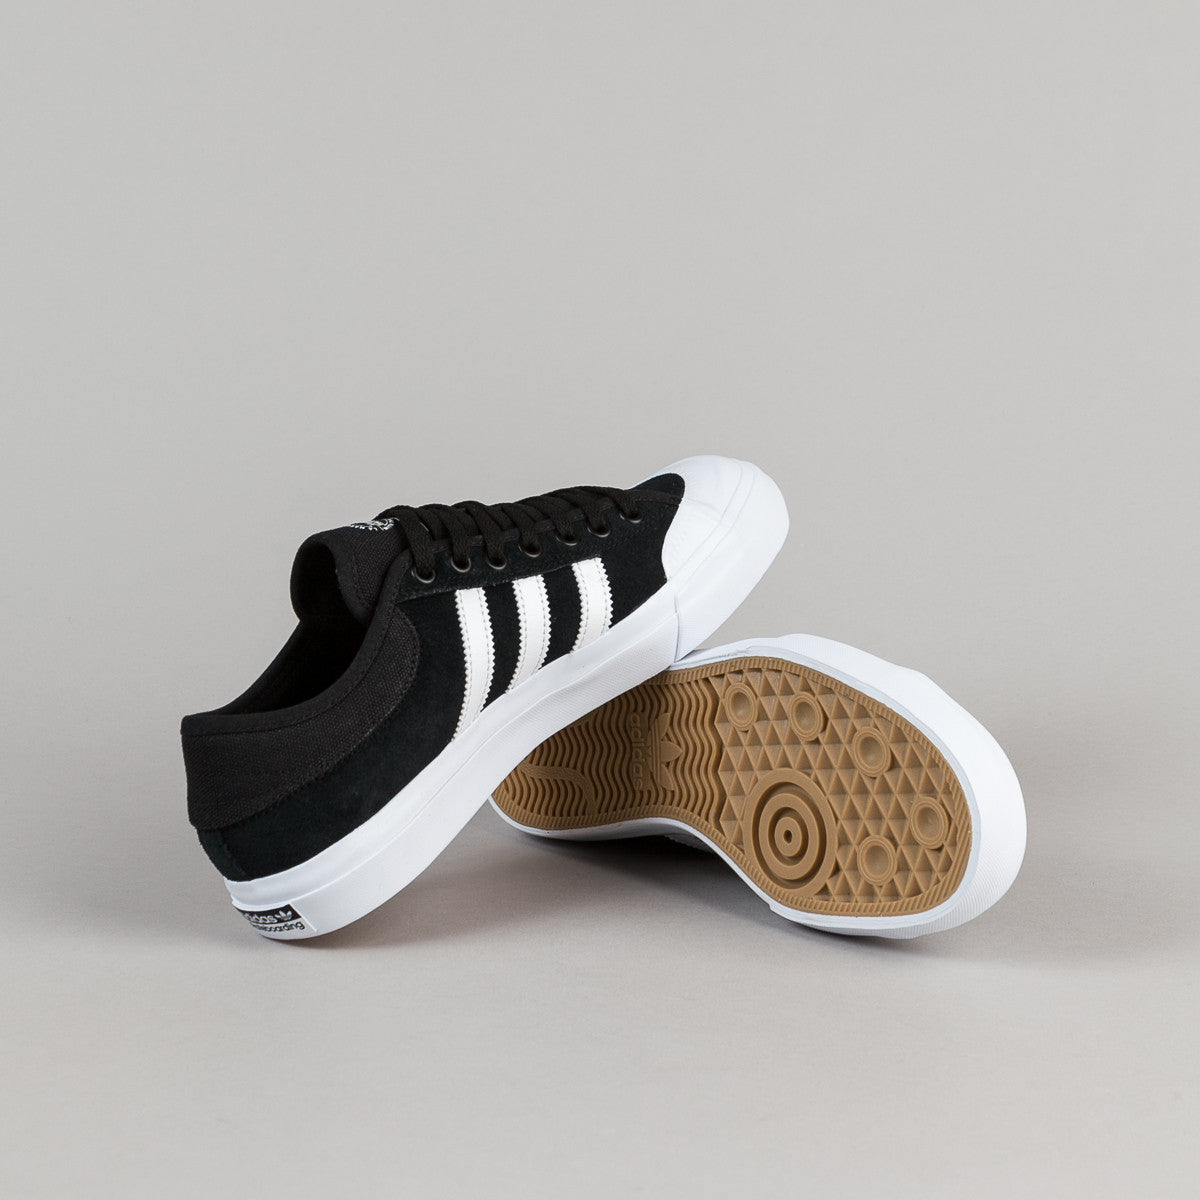 Adidas Matchcourt ADV Shoes - Core Black / White / White